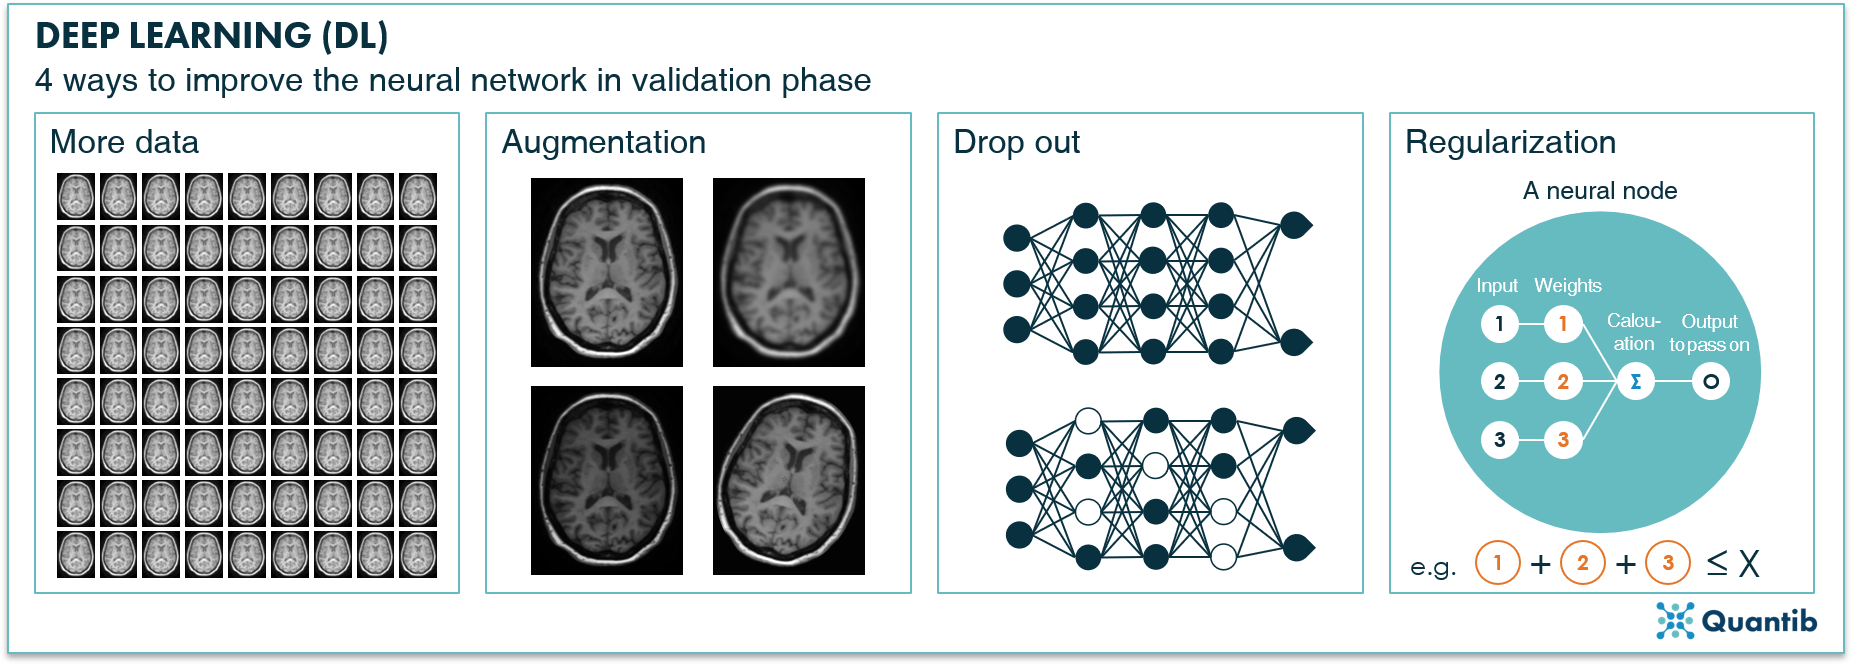 schematic figure illustrating deep learning in radiology explaining different techniques to improve a neural network in validation phase: adding data, augmentation, drop out, regularization